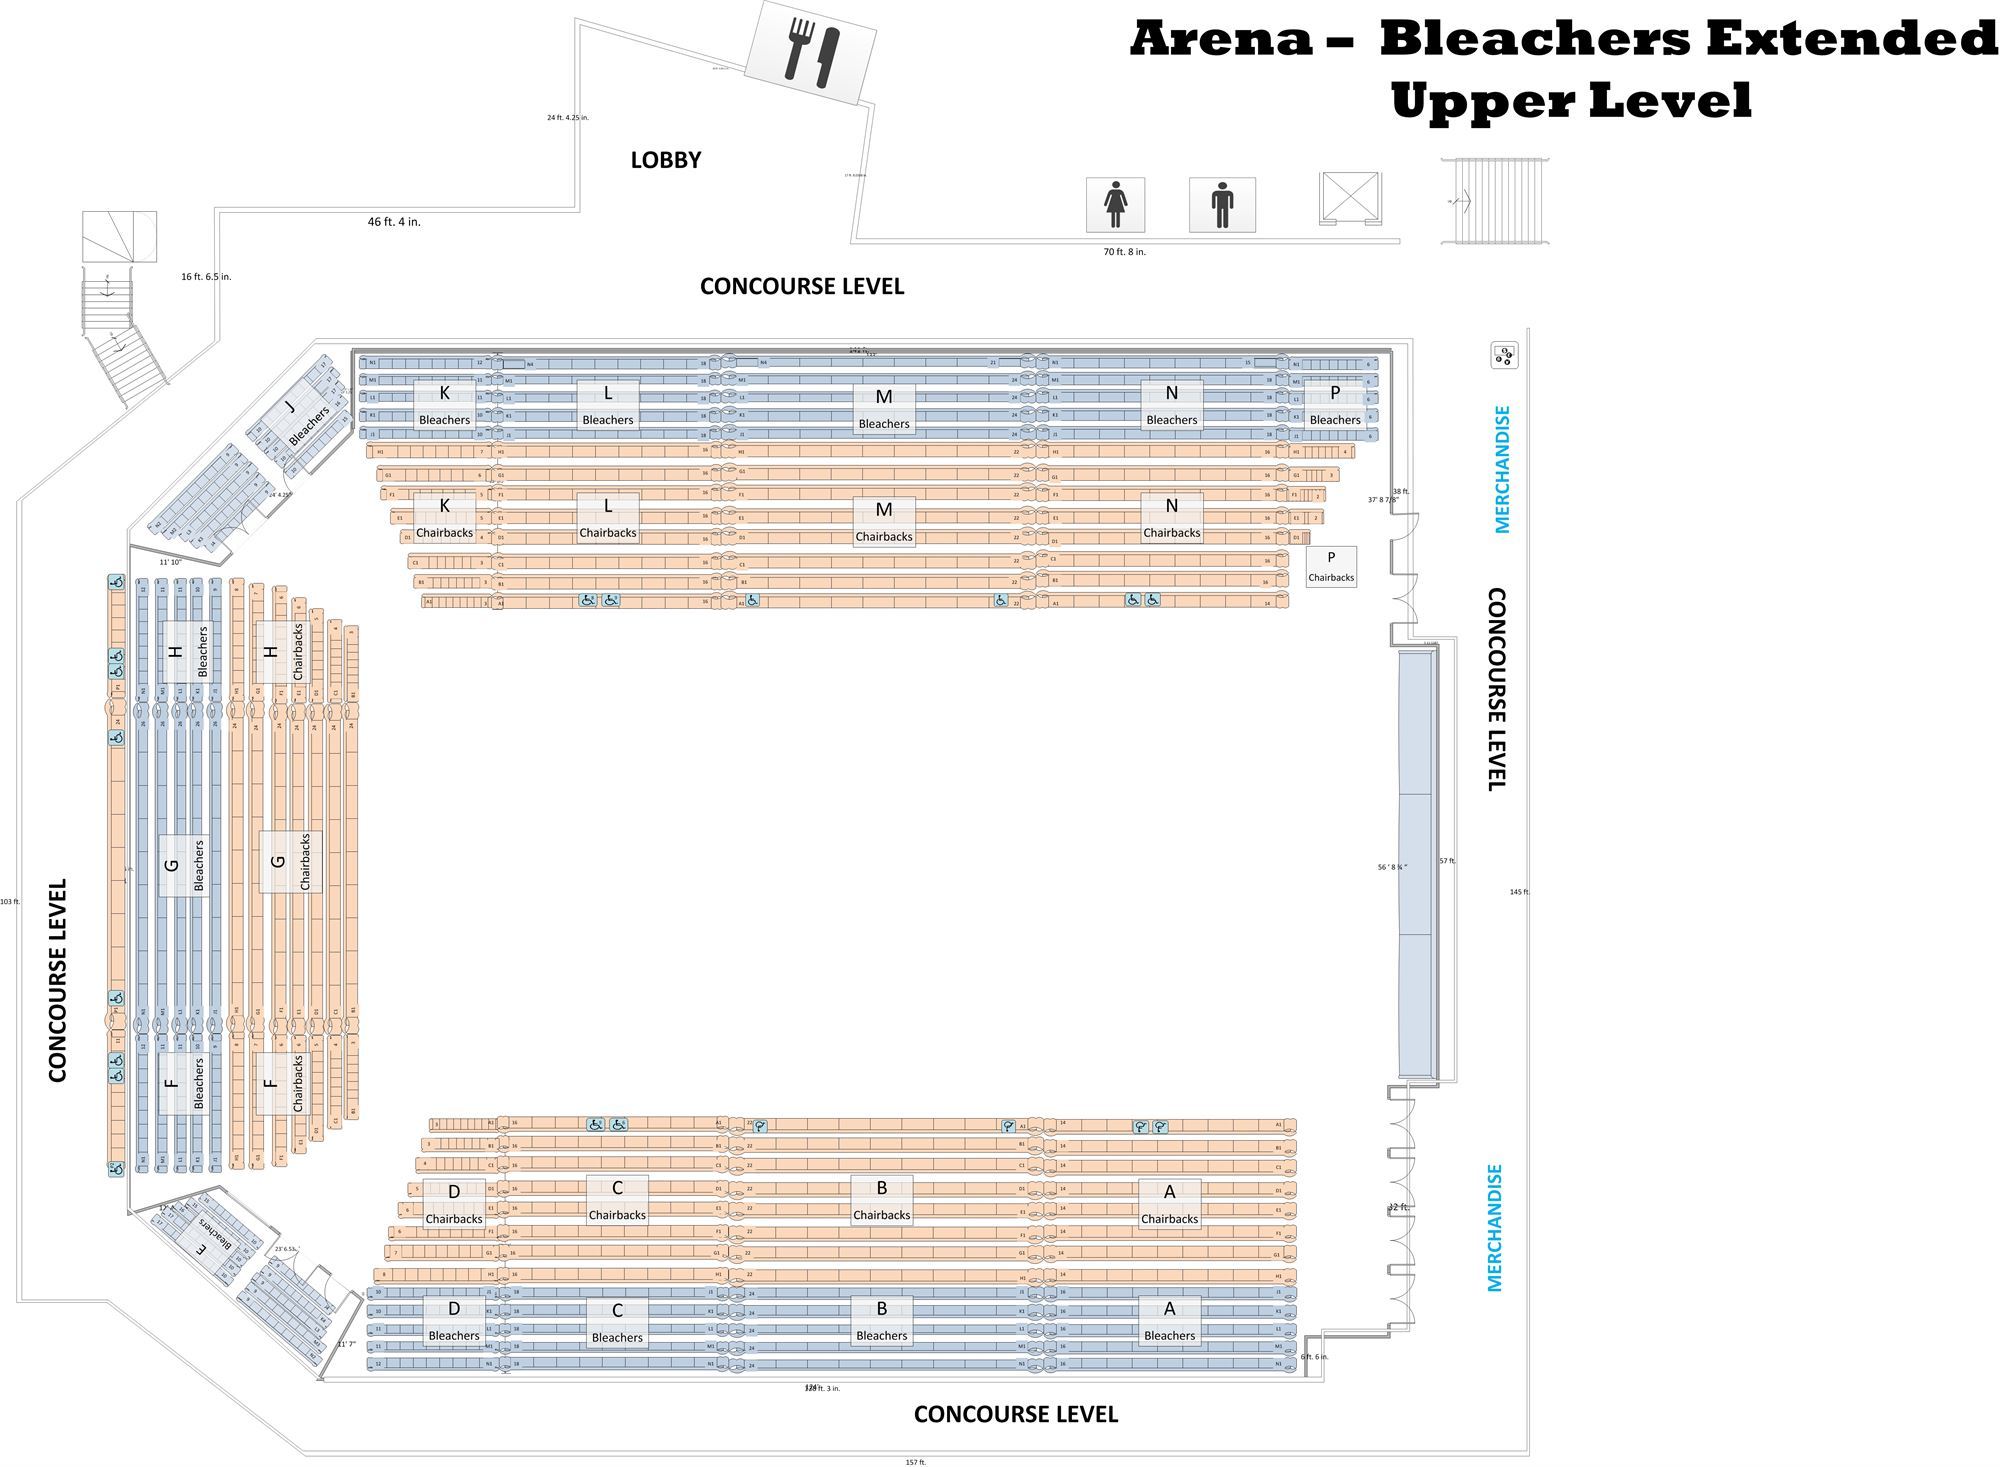 Seating Configurations - APG Federal Credit Union Arena